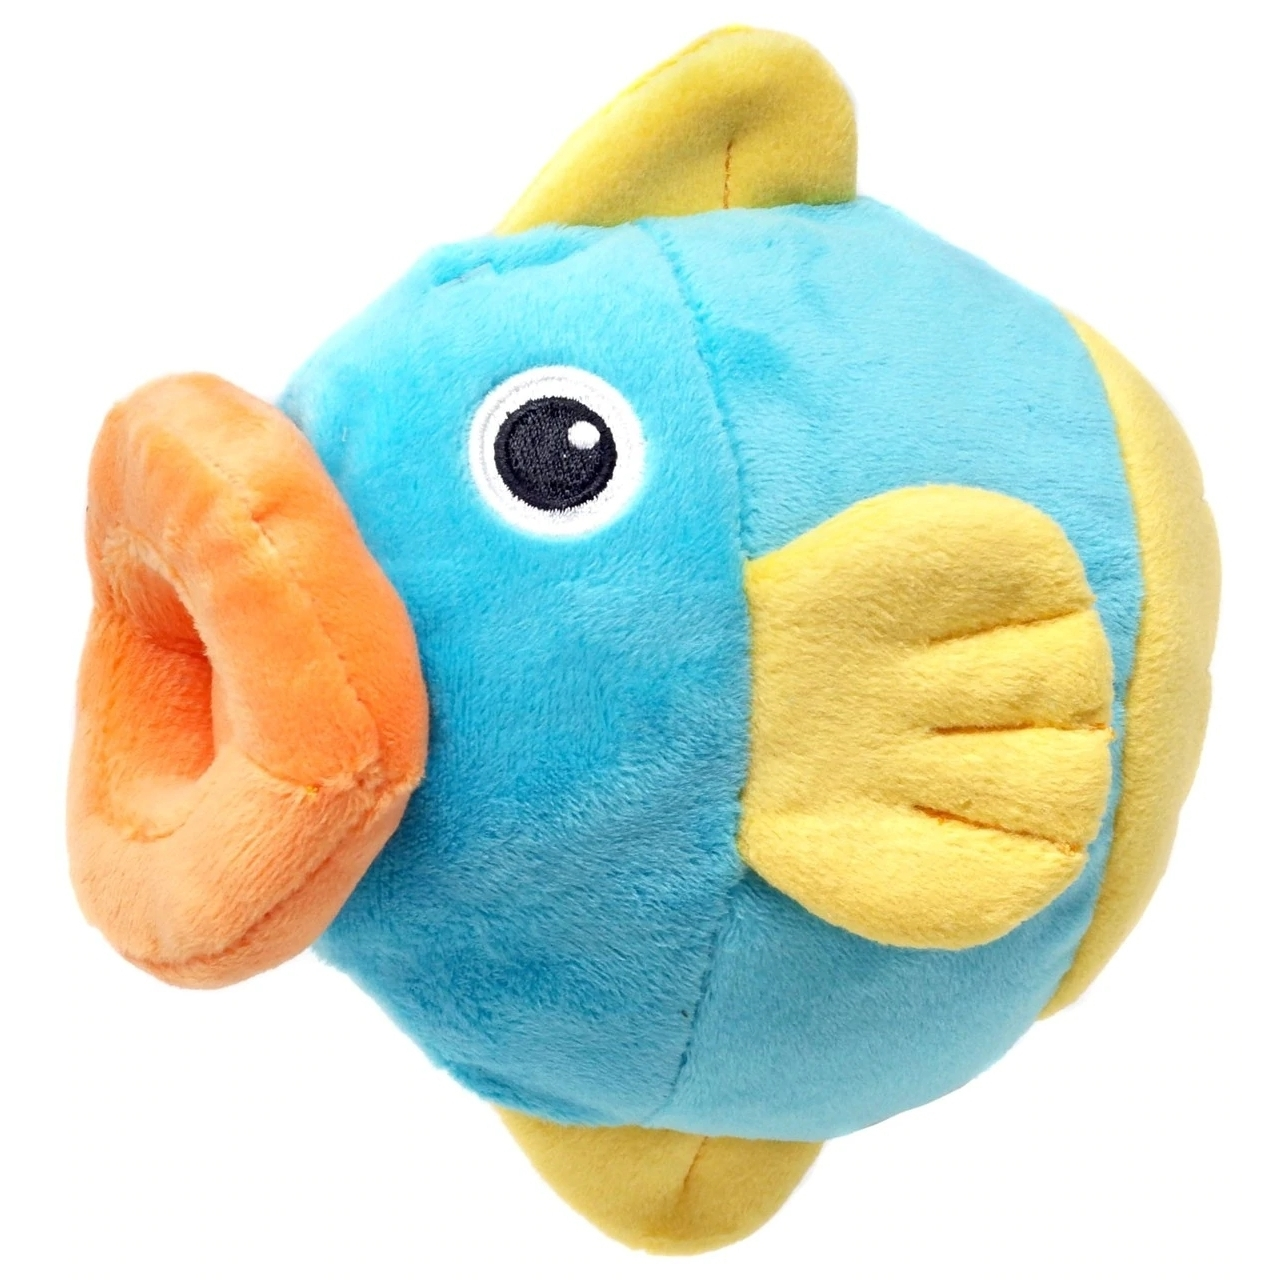 kine-kirby-all-star-collection-plush (1)